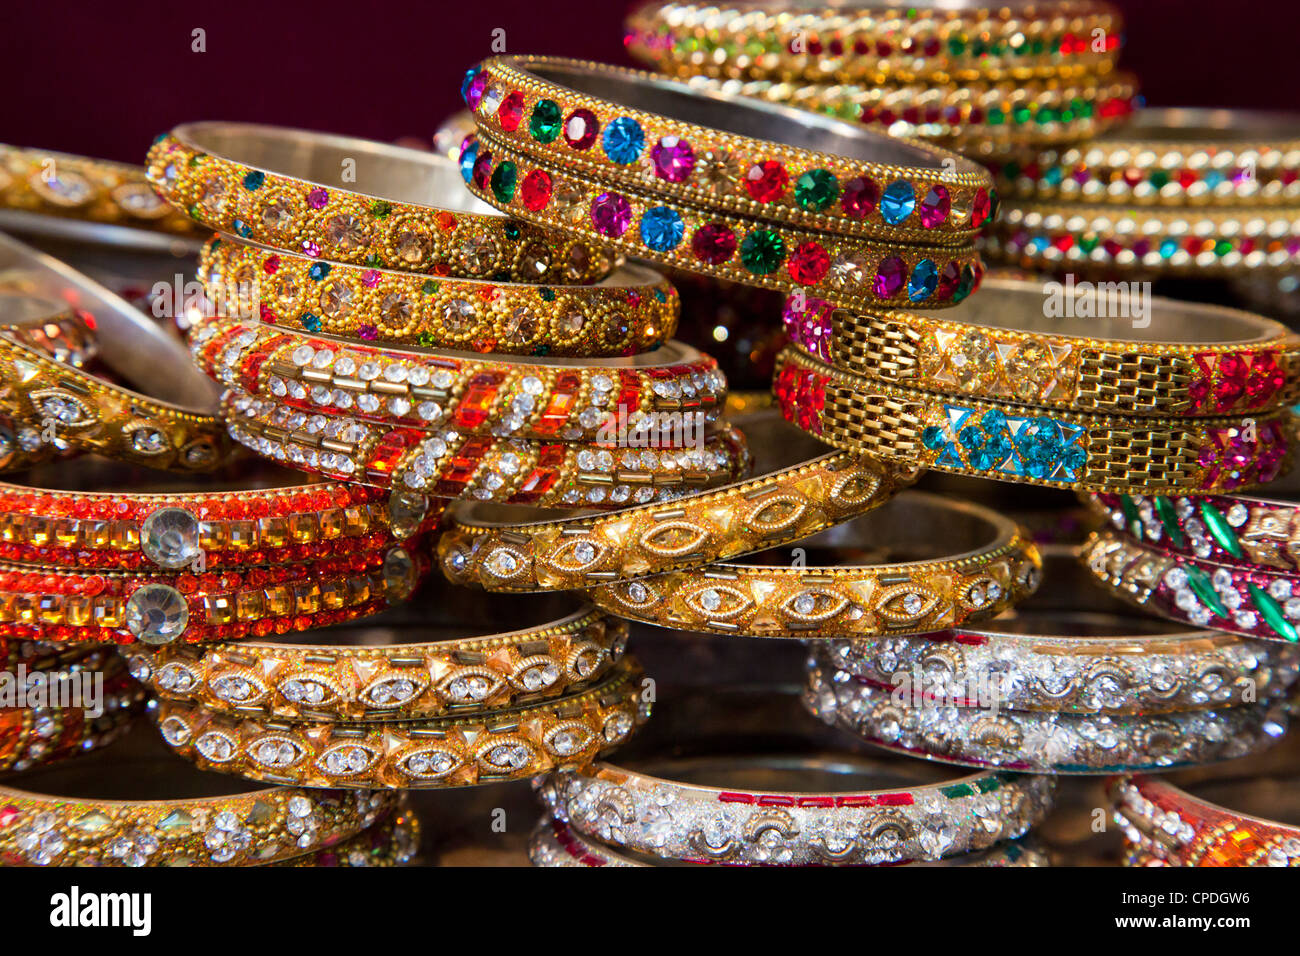 À vendre à braclets colorés un magasin à Jaipur, Rajasthan, Inde, Asie Photo Stock